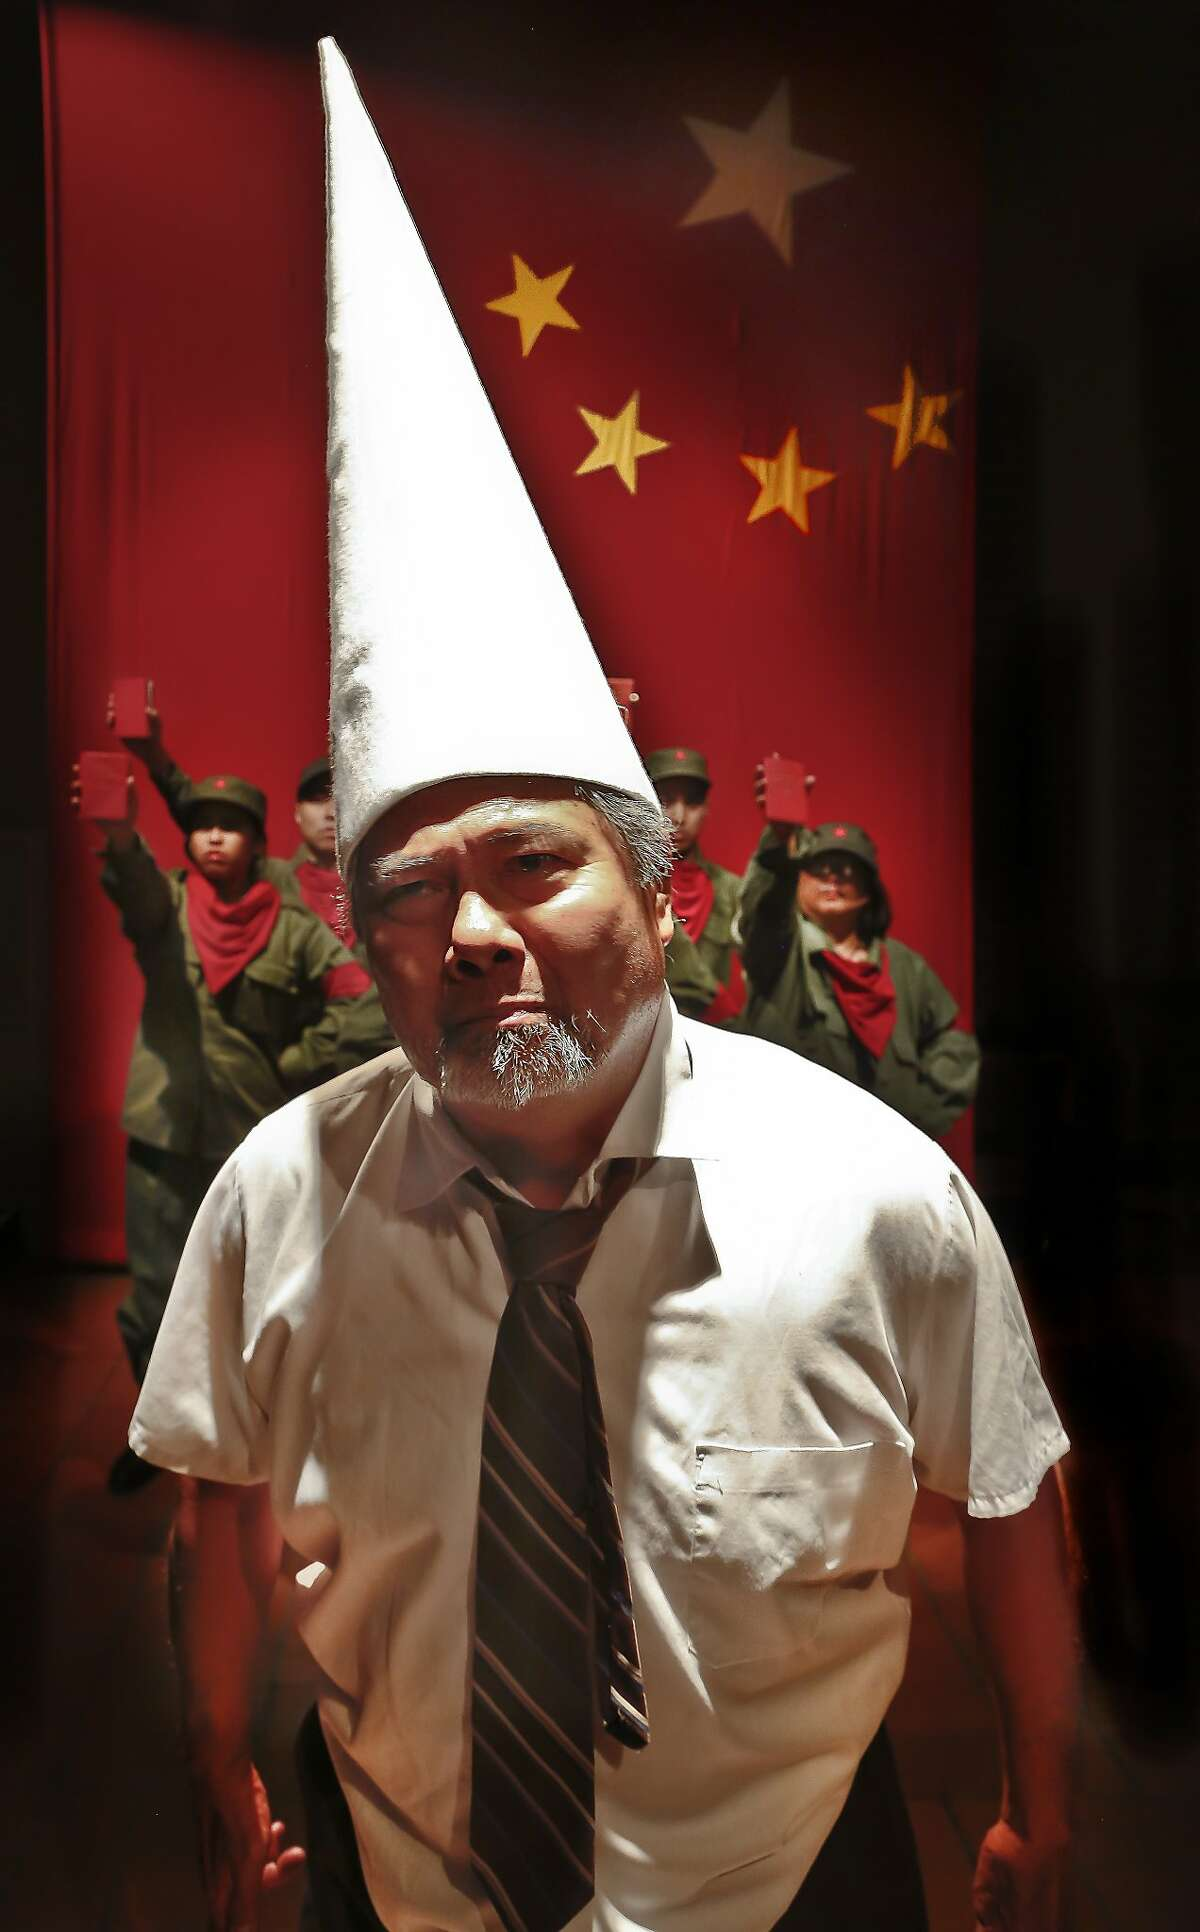 """Randall Nakano as Professor Yang being humiliated by the Red Guards in """"The Crazed"""" at Central Works"""